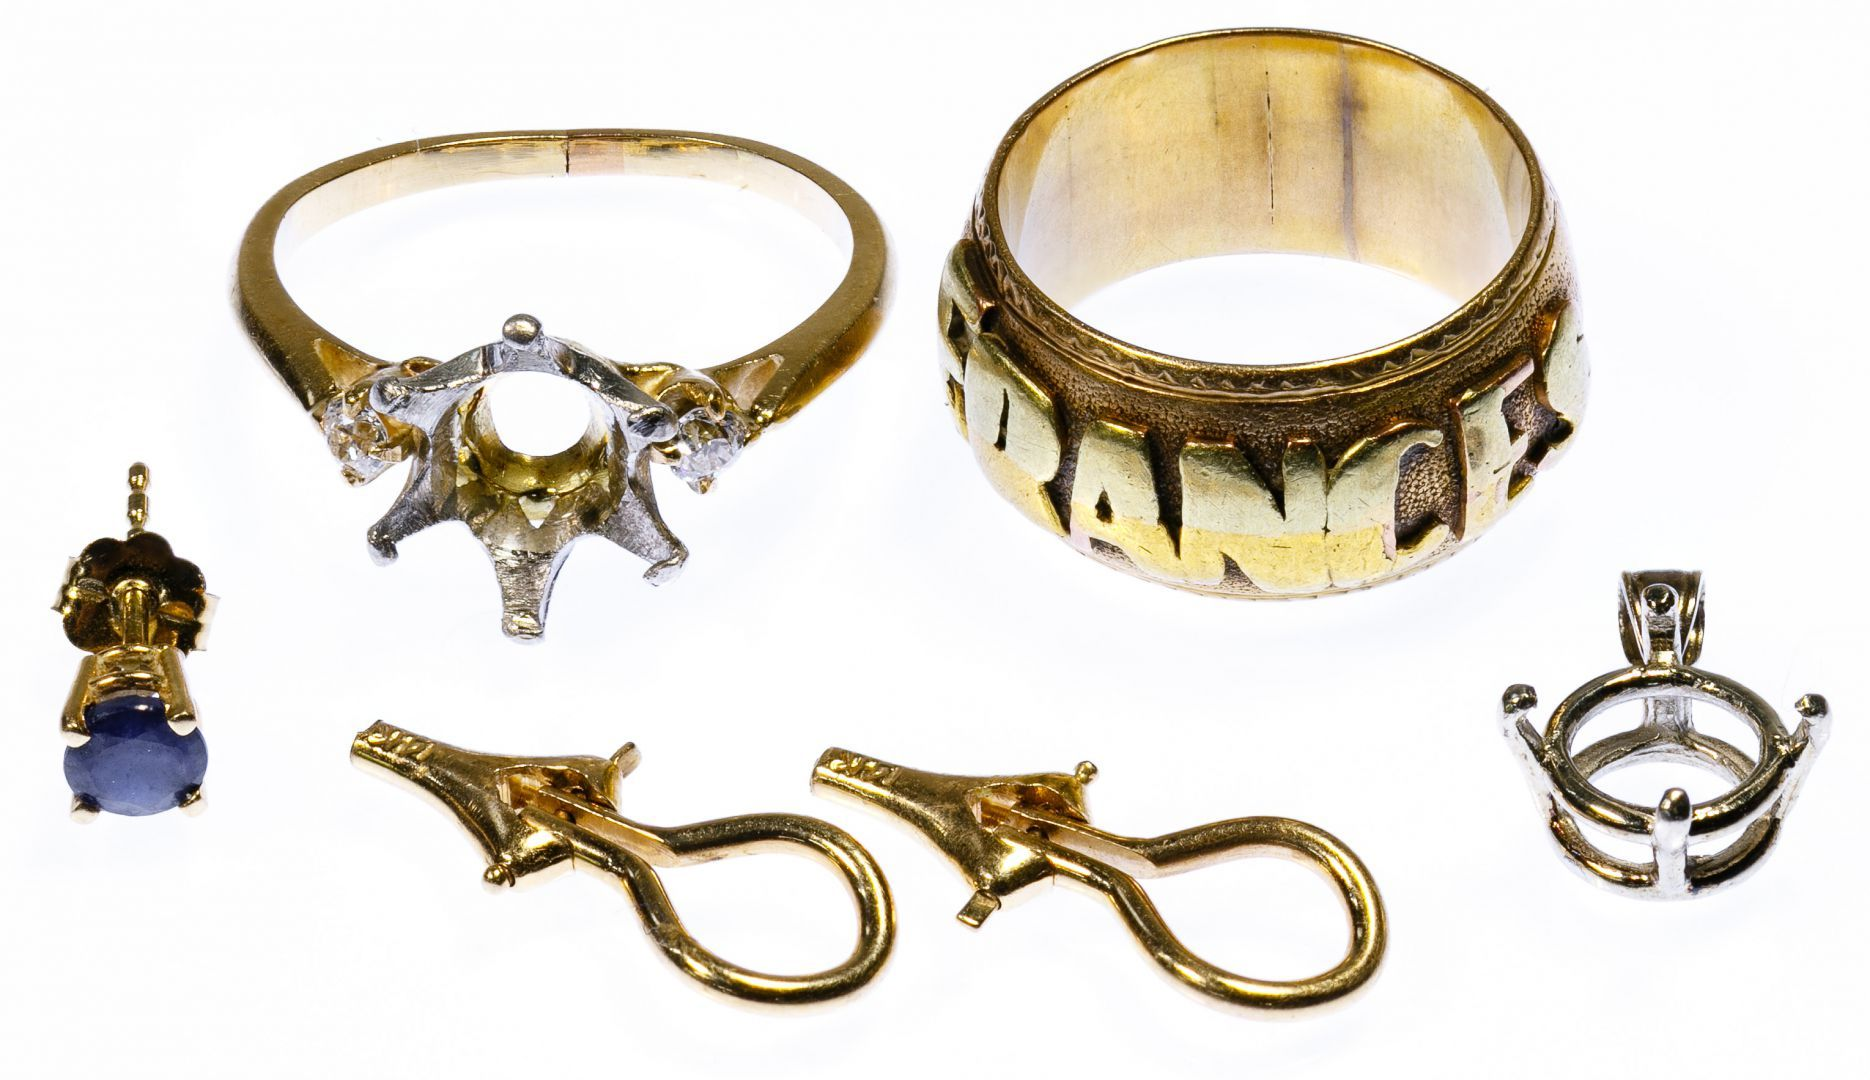 Lot 219 14k gold band ring marked 14k together with